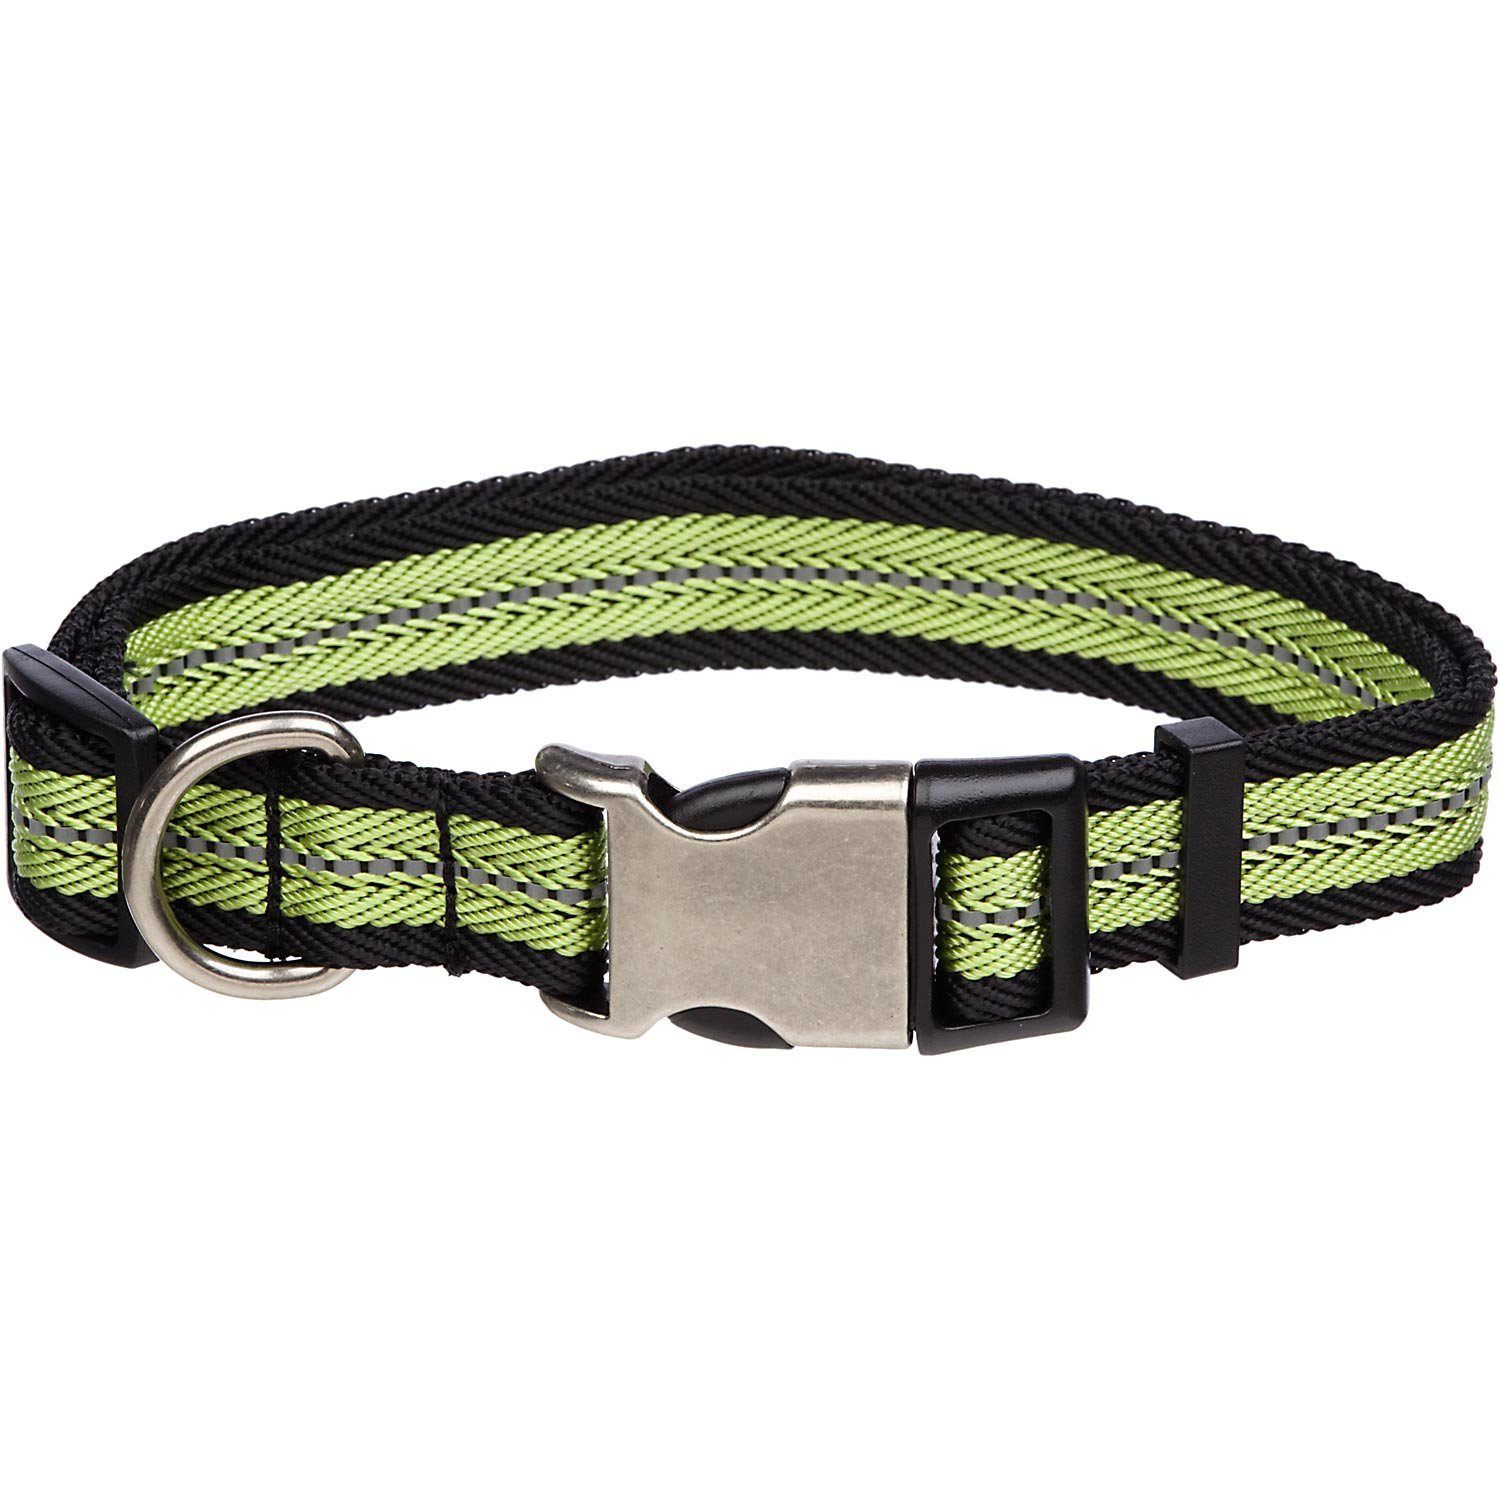 Petco Reflective Adjustable Green Dog Collar